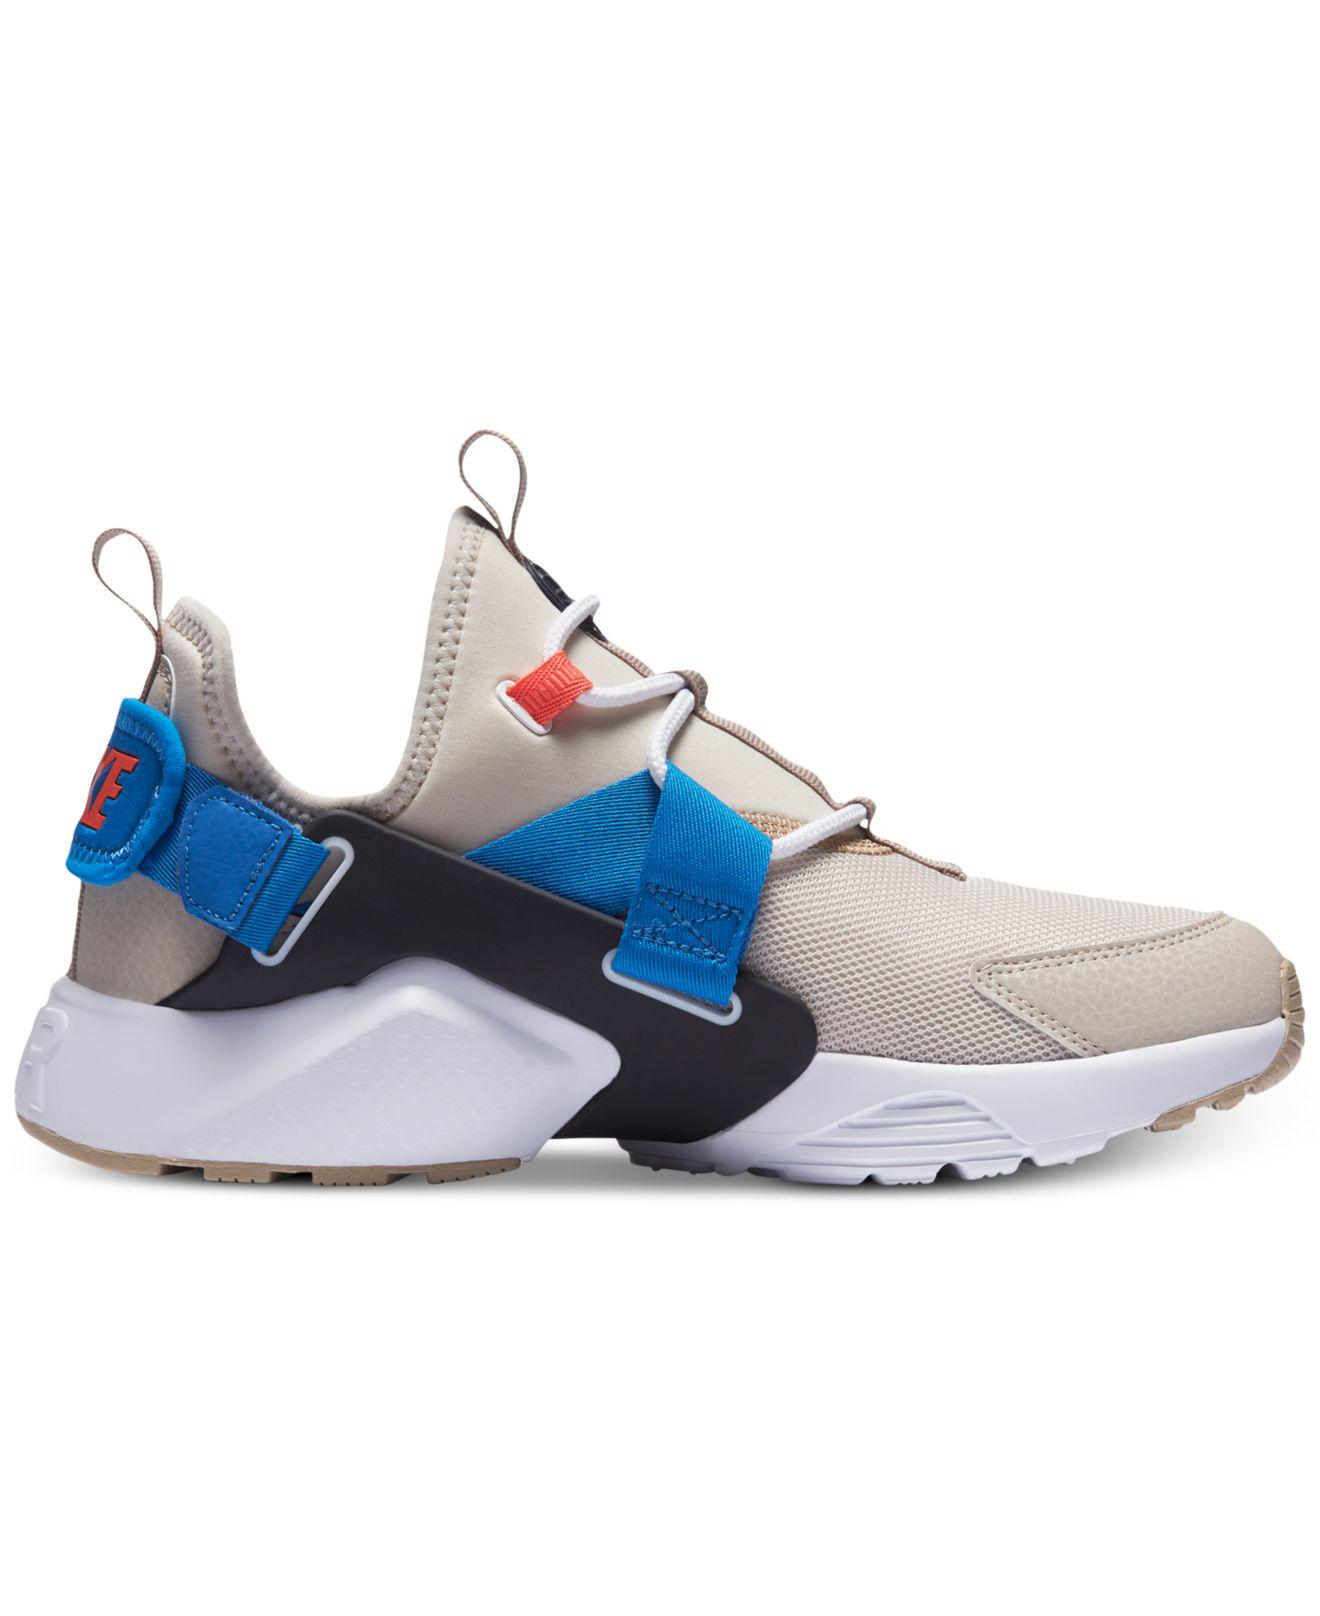 167705b043500 Lyst - Nike Air Huarache City Low Casual Sneakers From Finish Line